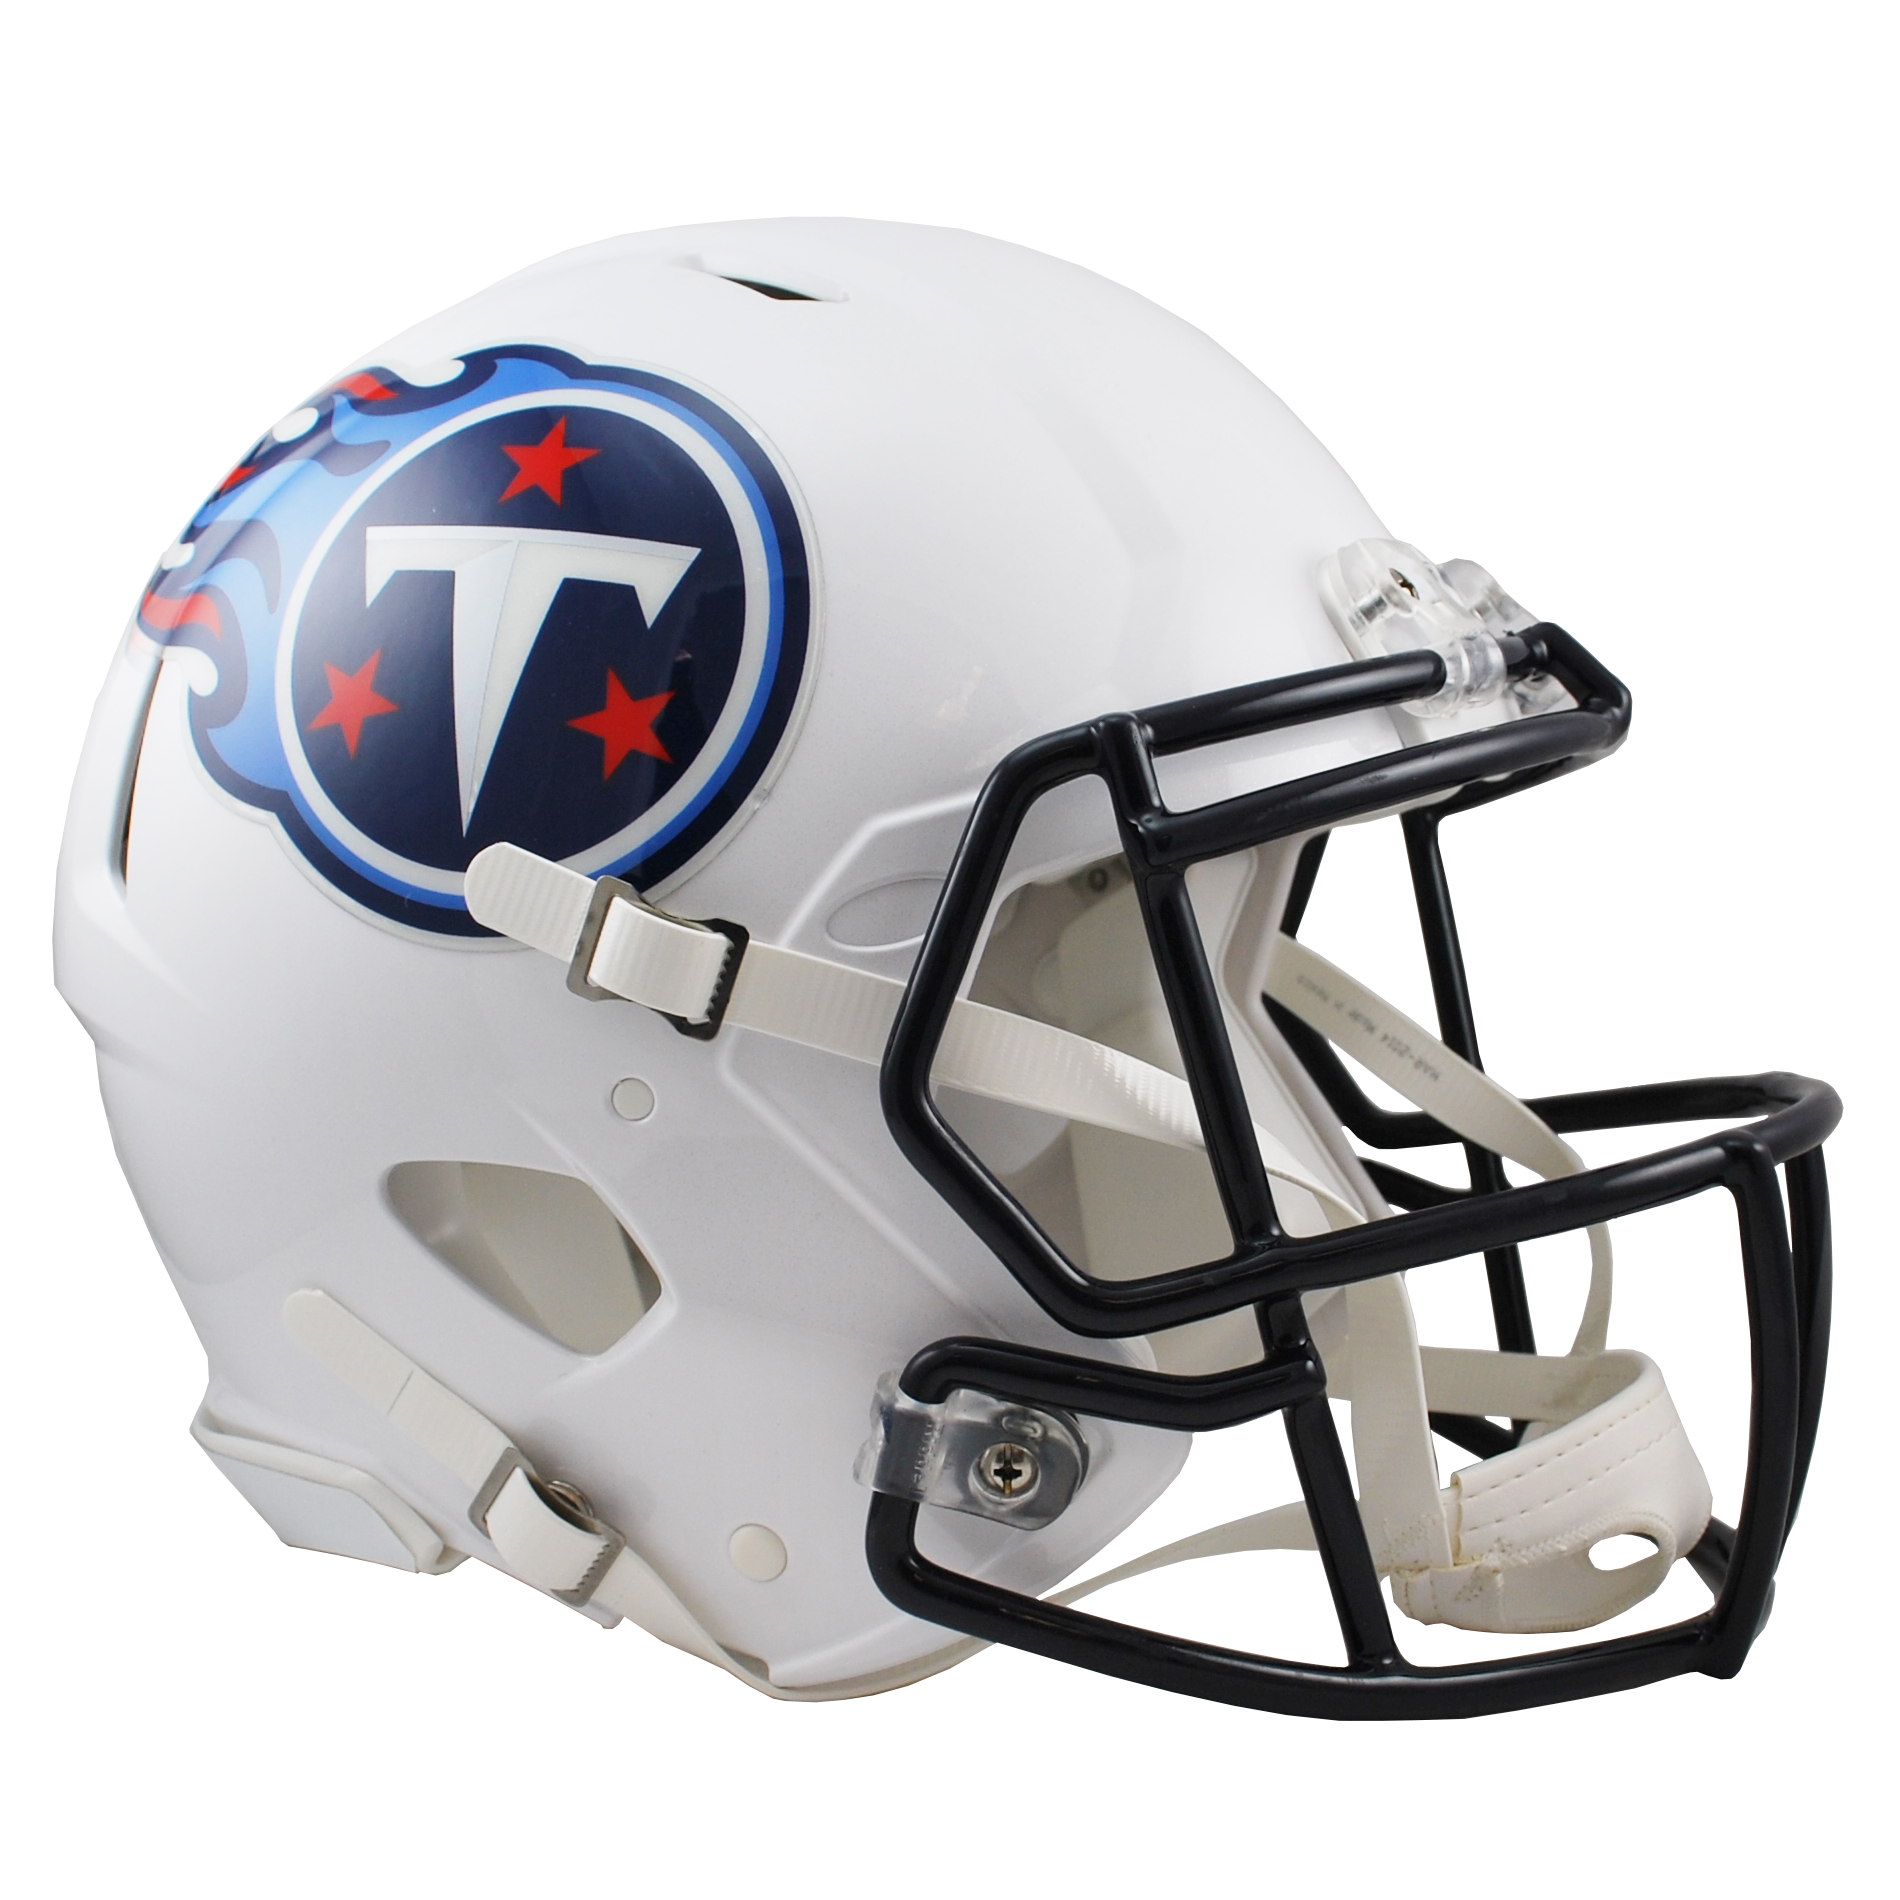 Can you name the. Nfl helmet png